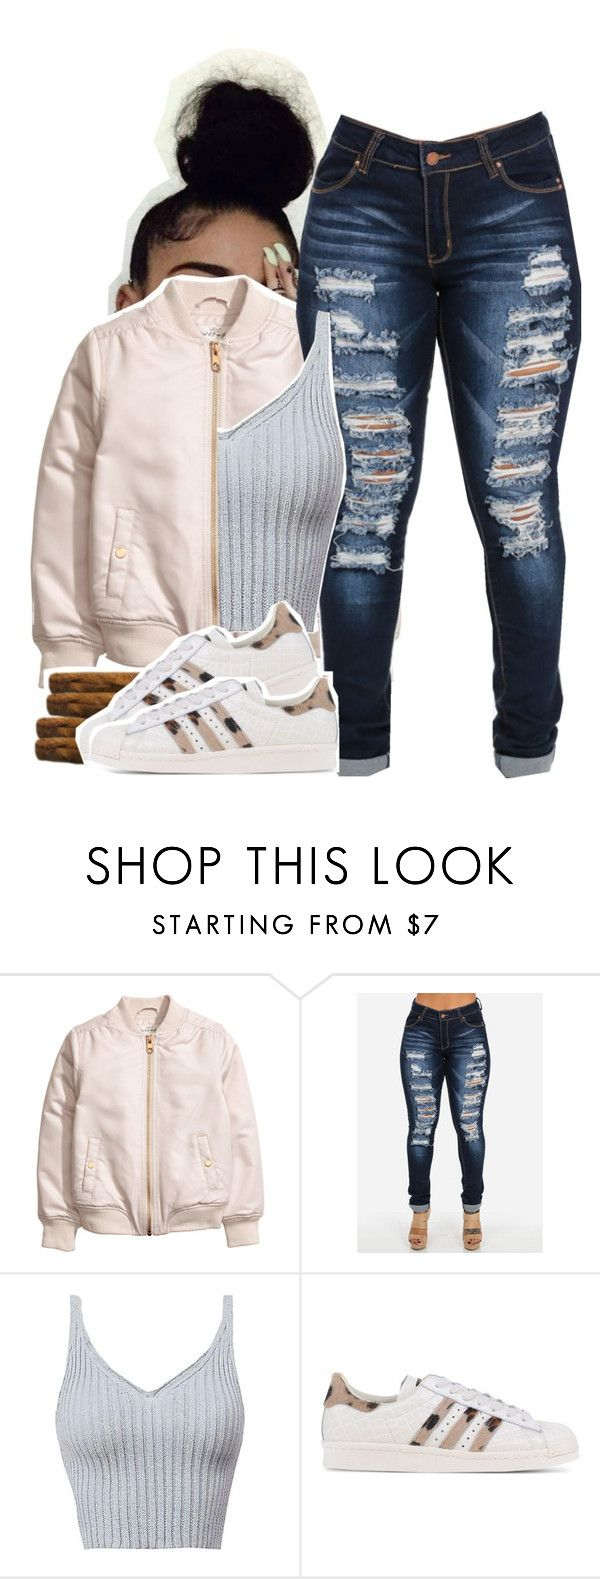 25+ best ideas about Dope outfits on Pinterest | Swag outfits Puma outfit and Swag girl outfits